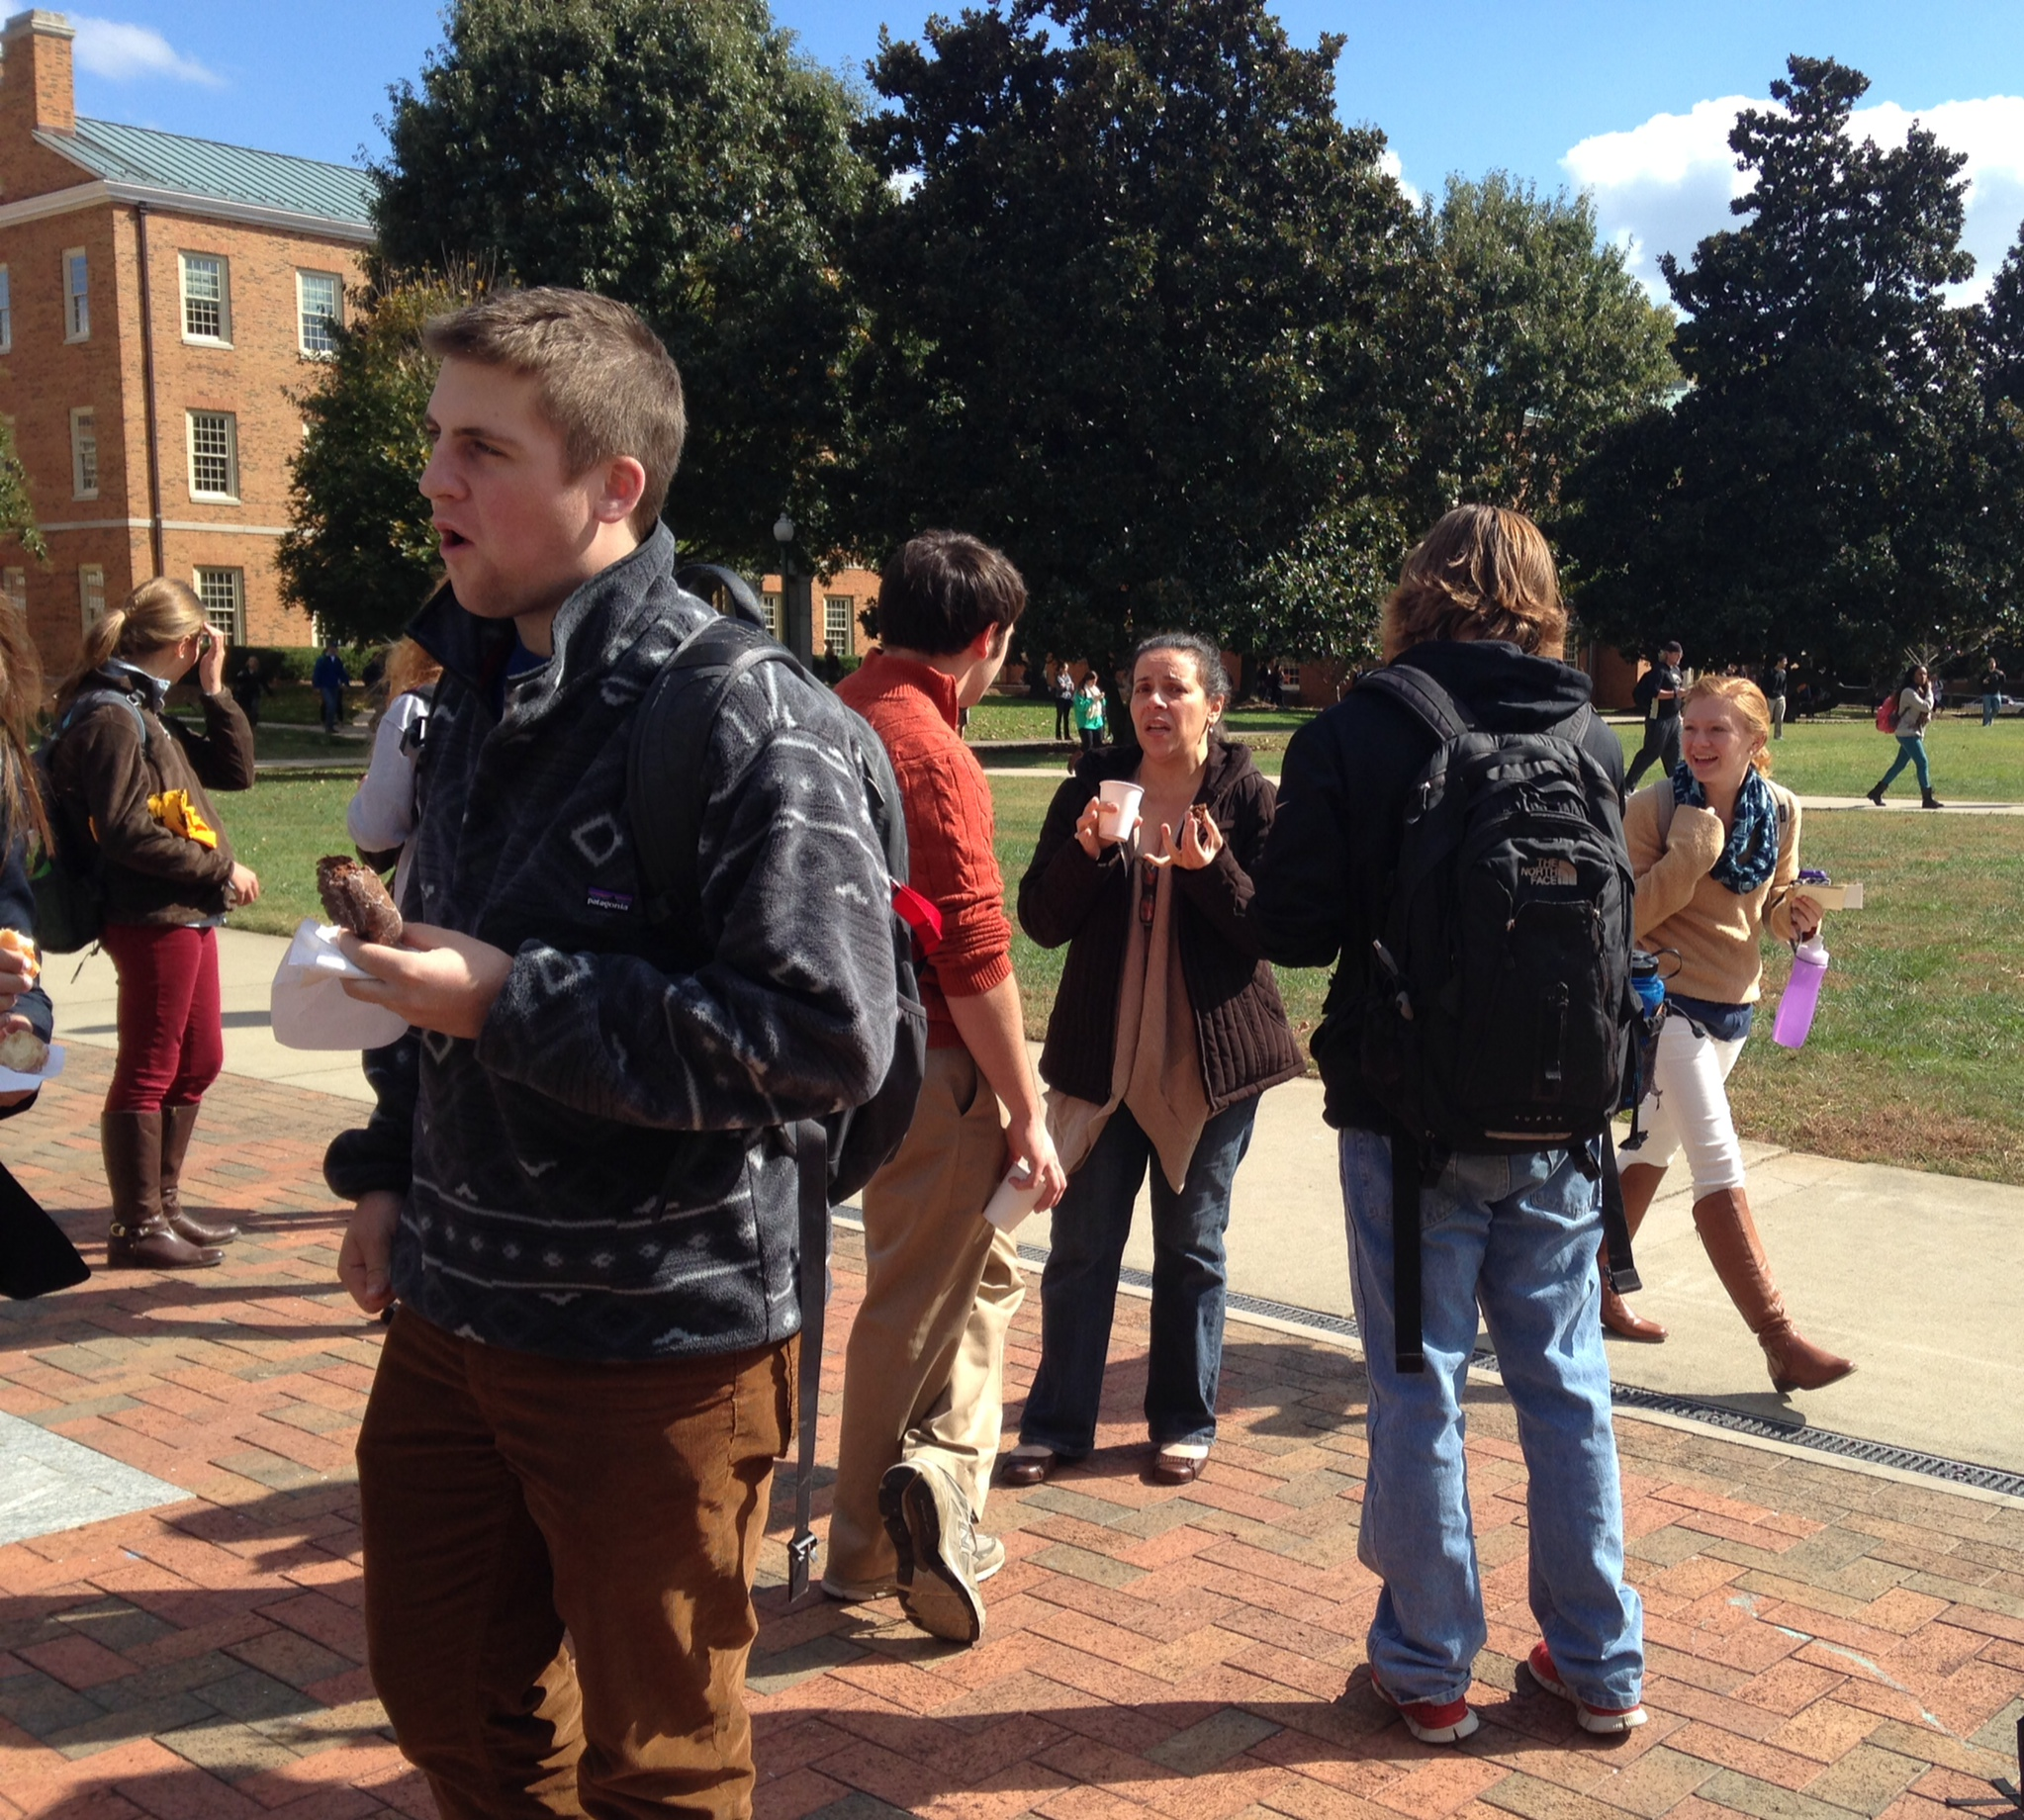 Students and Faculty celebrate WFU's exceptional teaching with coffee and doughnuts